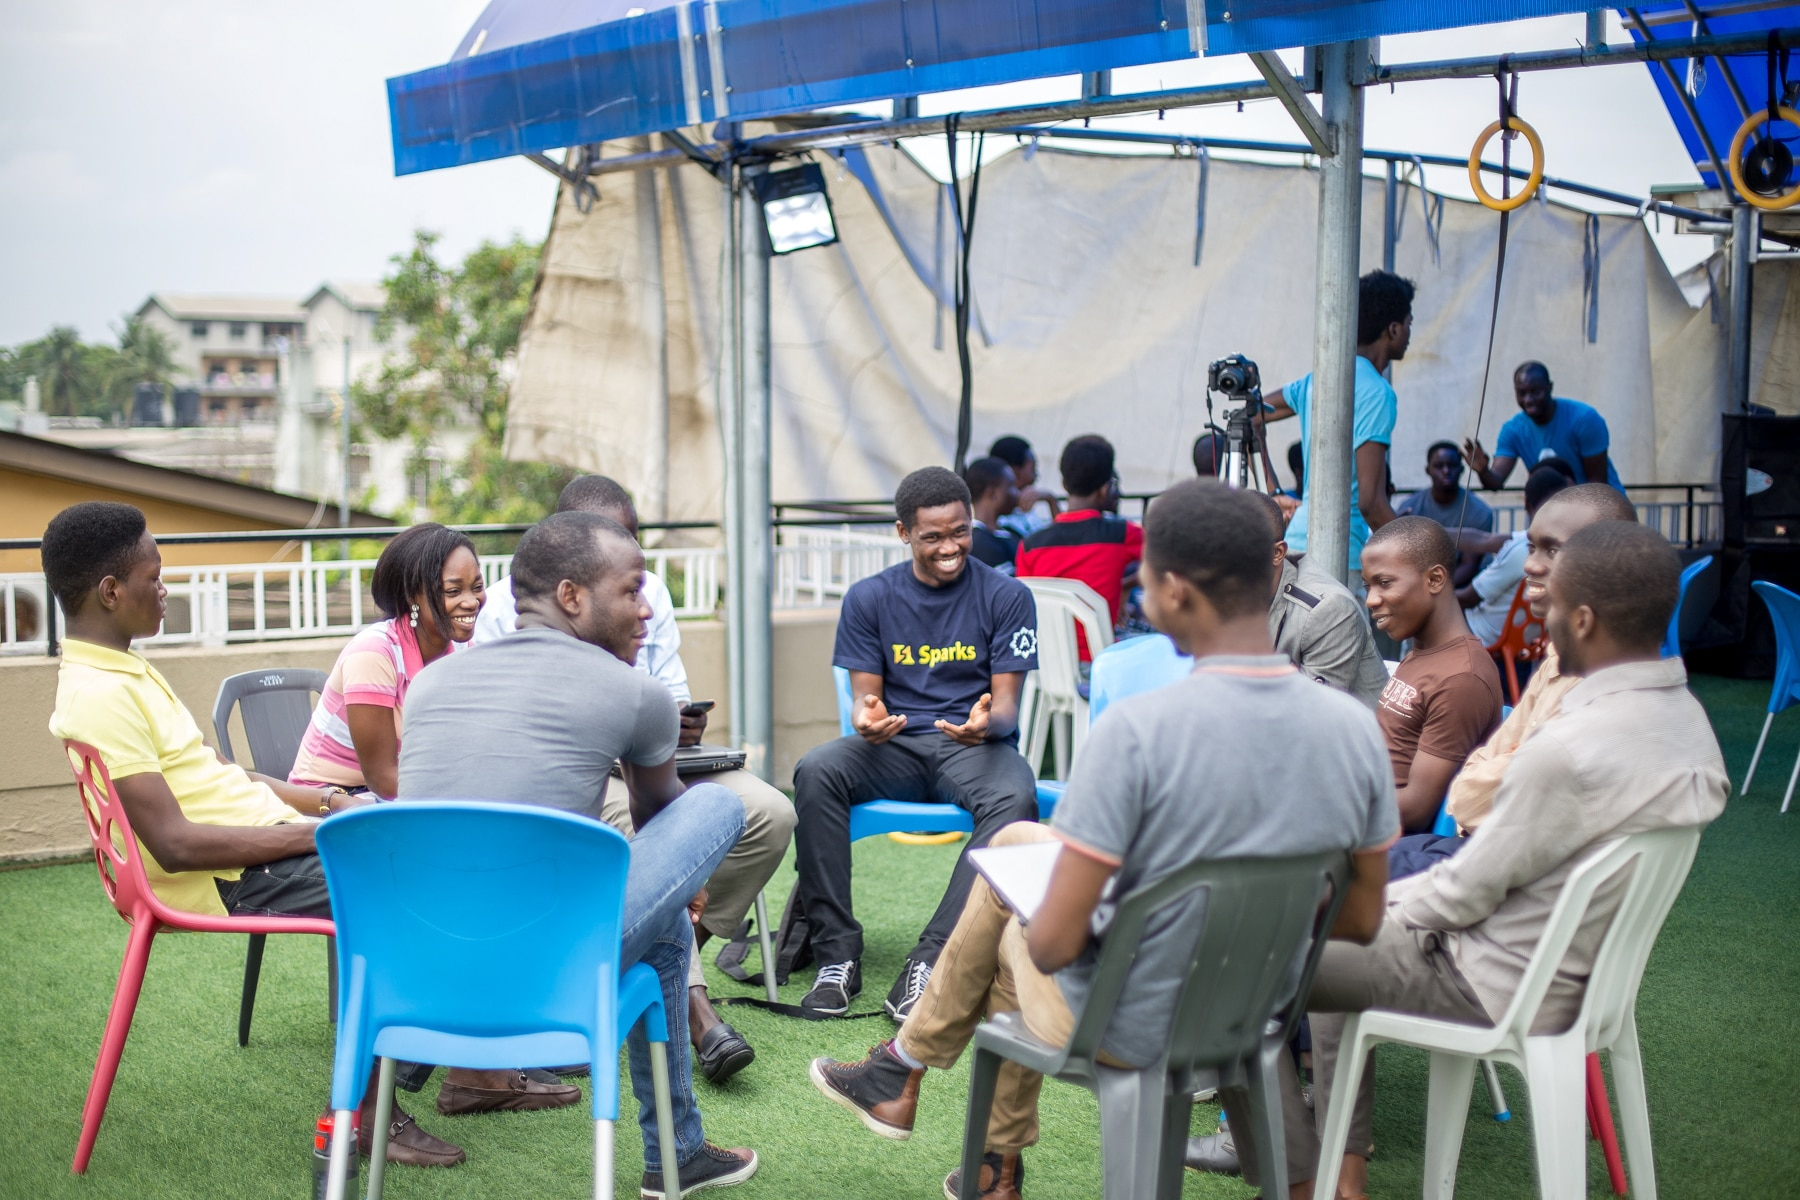 Group of people sitting in chairs in circle (Courtesy of Andela)